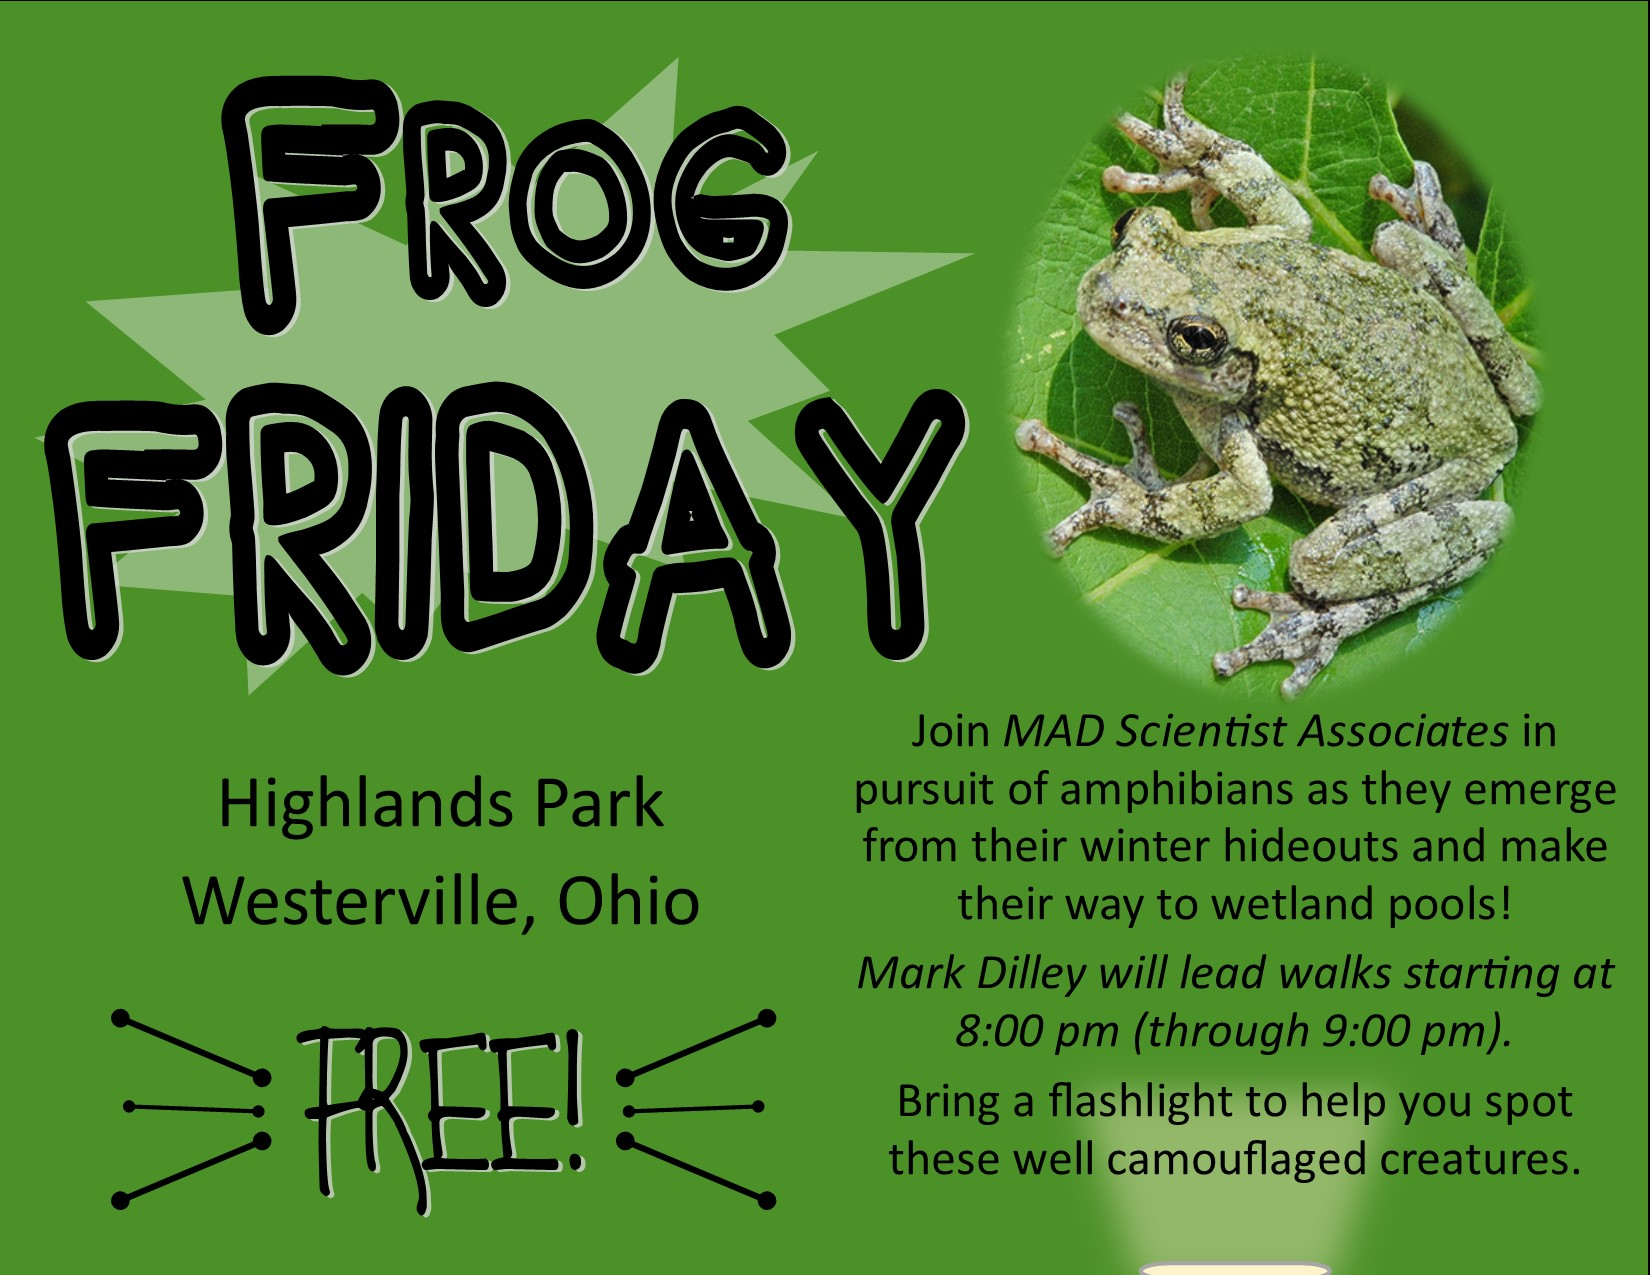 FROG FRIDAY - GRAY TREE FROG - MAD SCIENTIST ASSOC